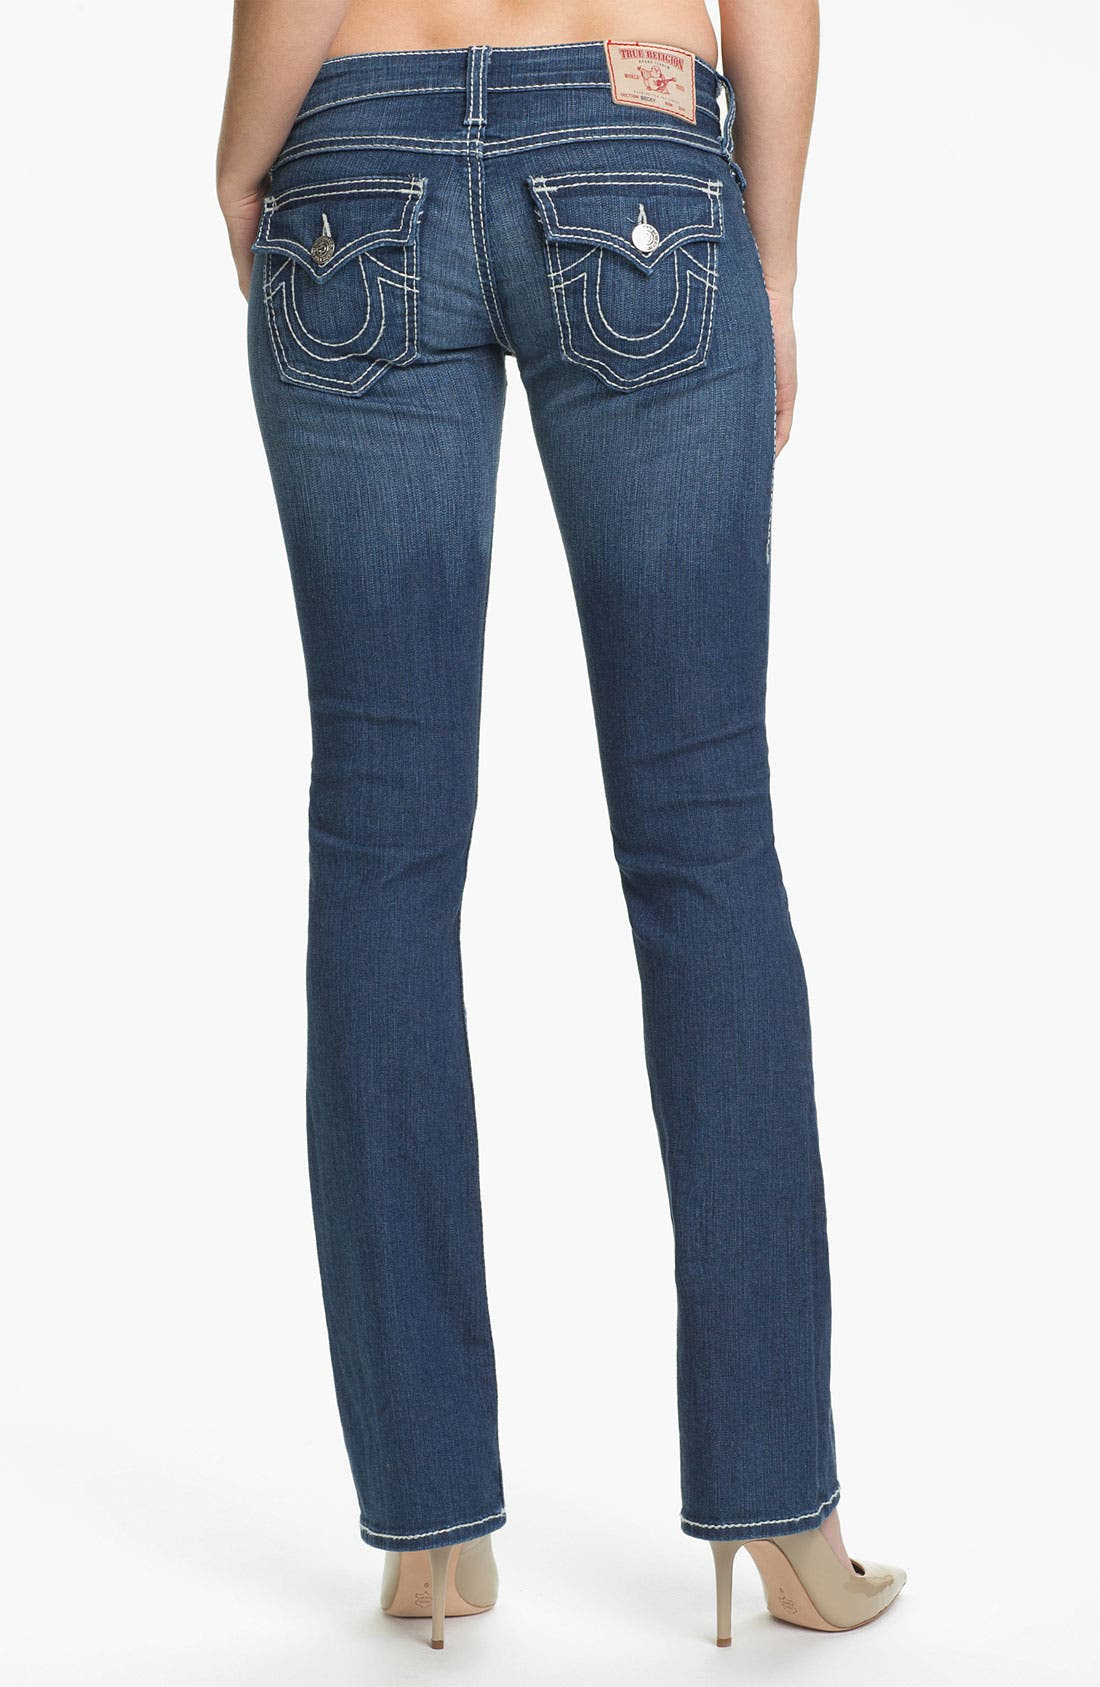 Alternate Image 2  - True Religion Brand Jeans 'Becky' Bootcut Jeans (Rosewood)